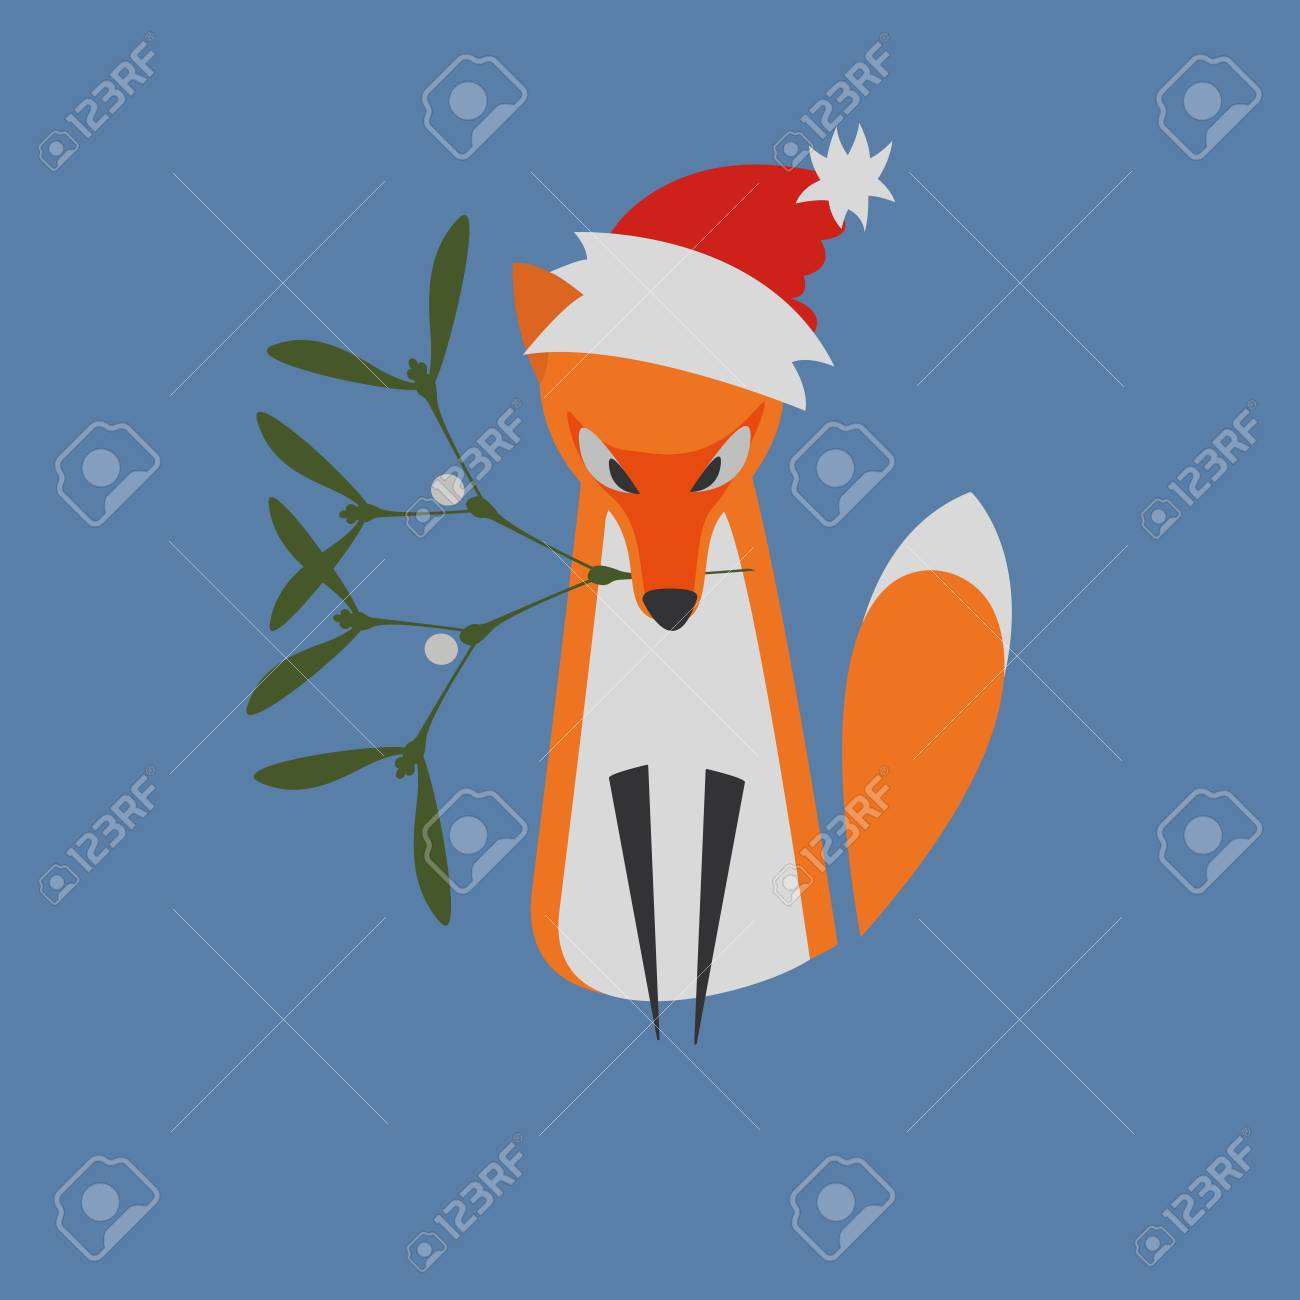 Illustrated He Fox Sitting With Mistletoe Branch As A Symbol